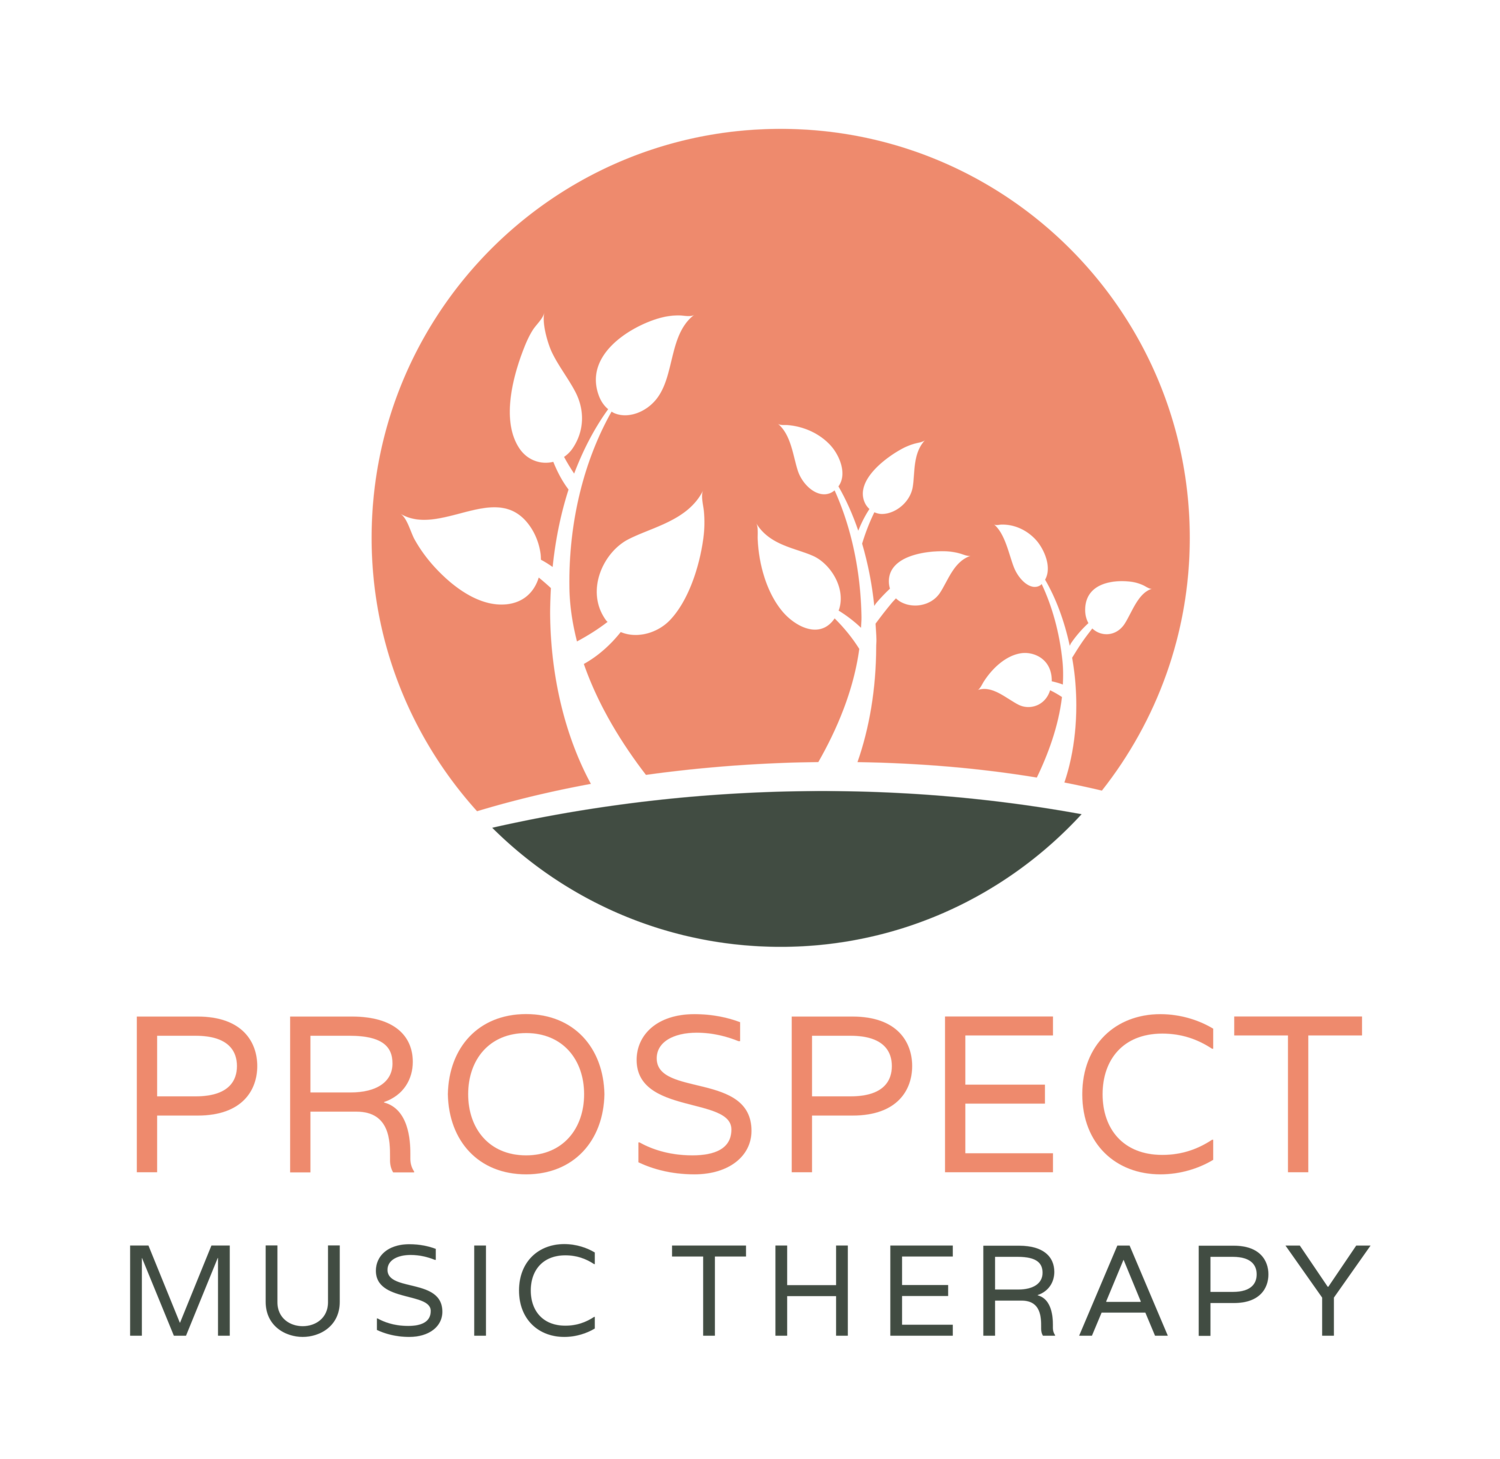 PROSPECT MUSIC THERAPY